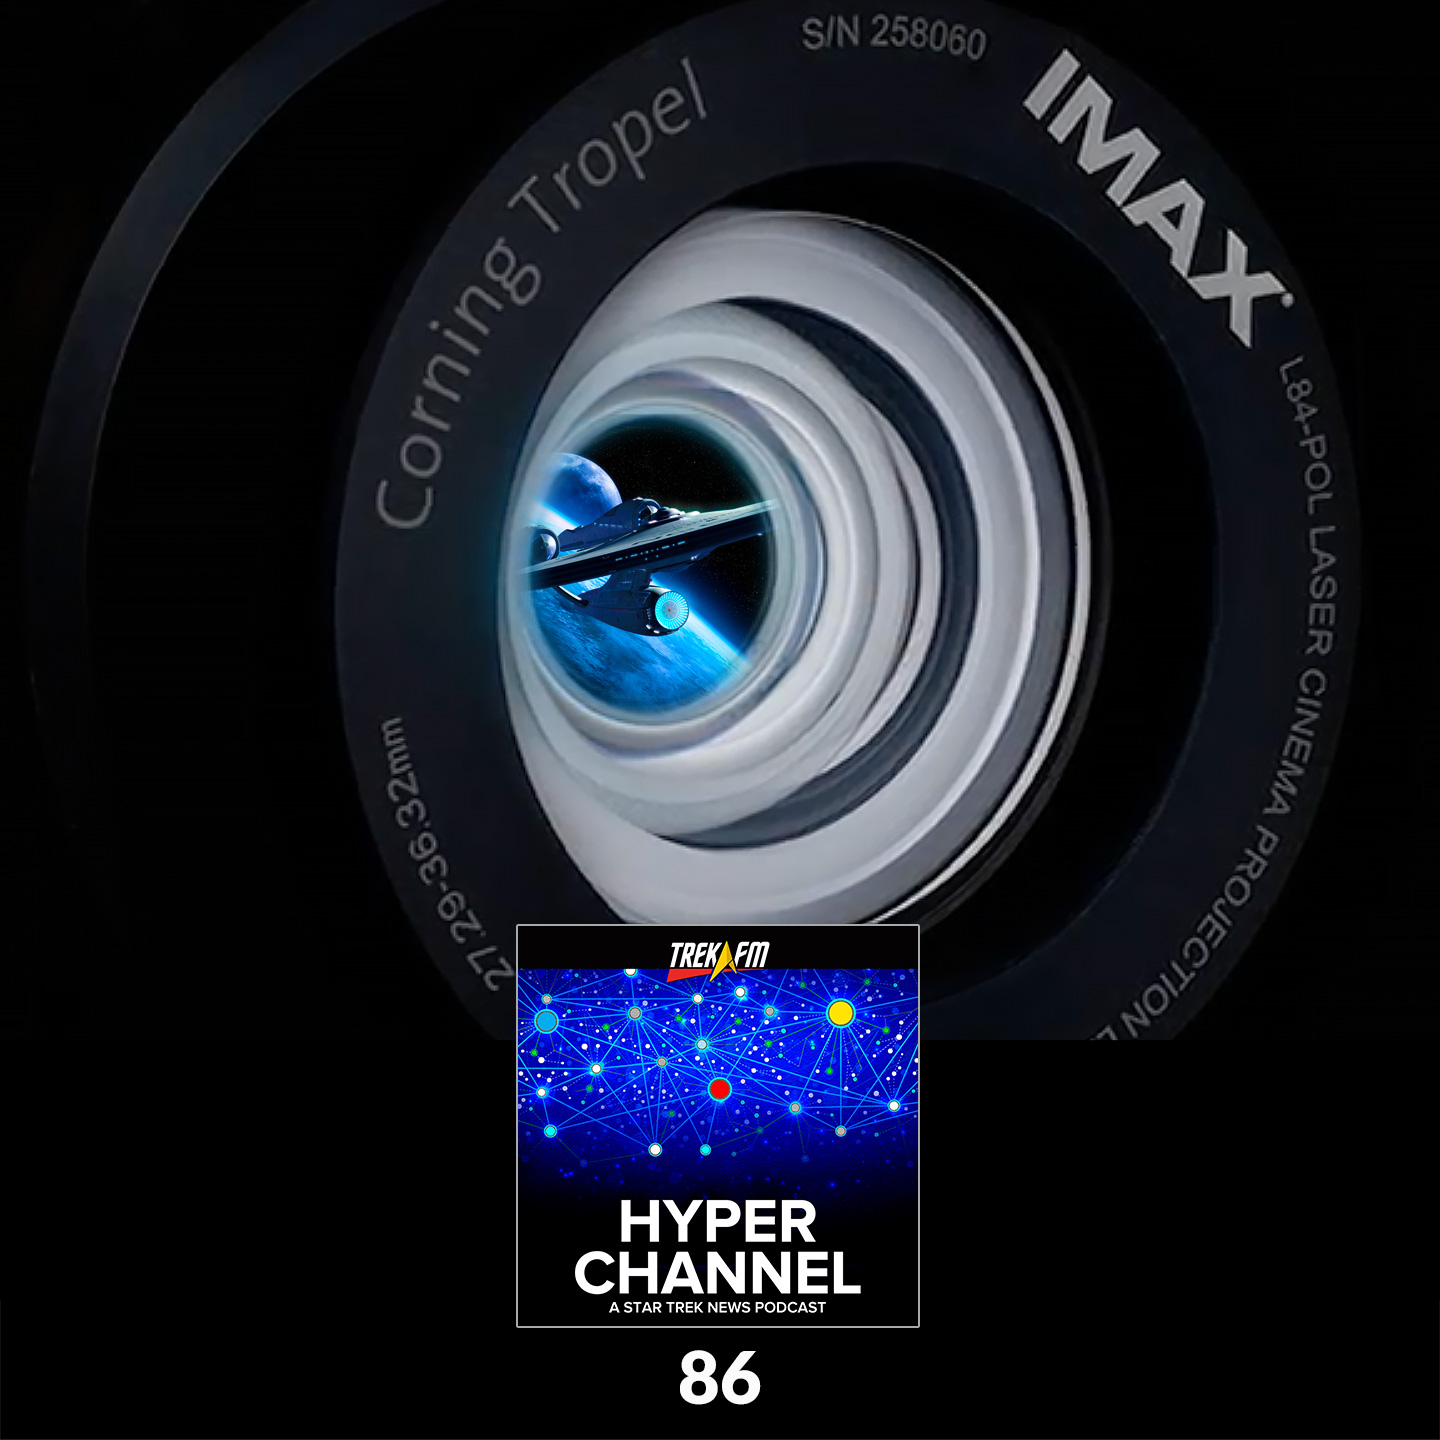 Hyperchannel 86: I, Max